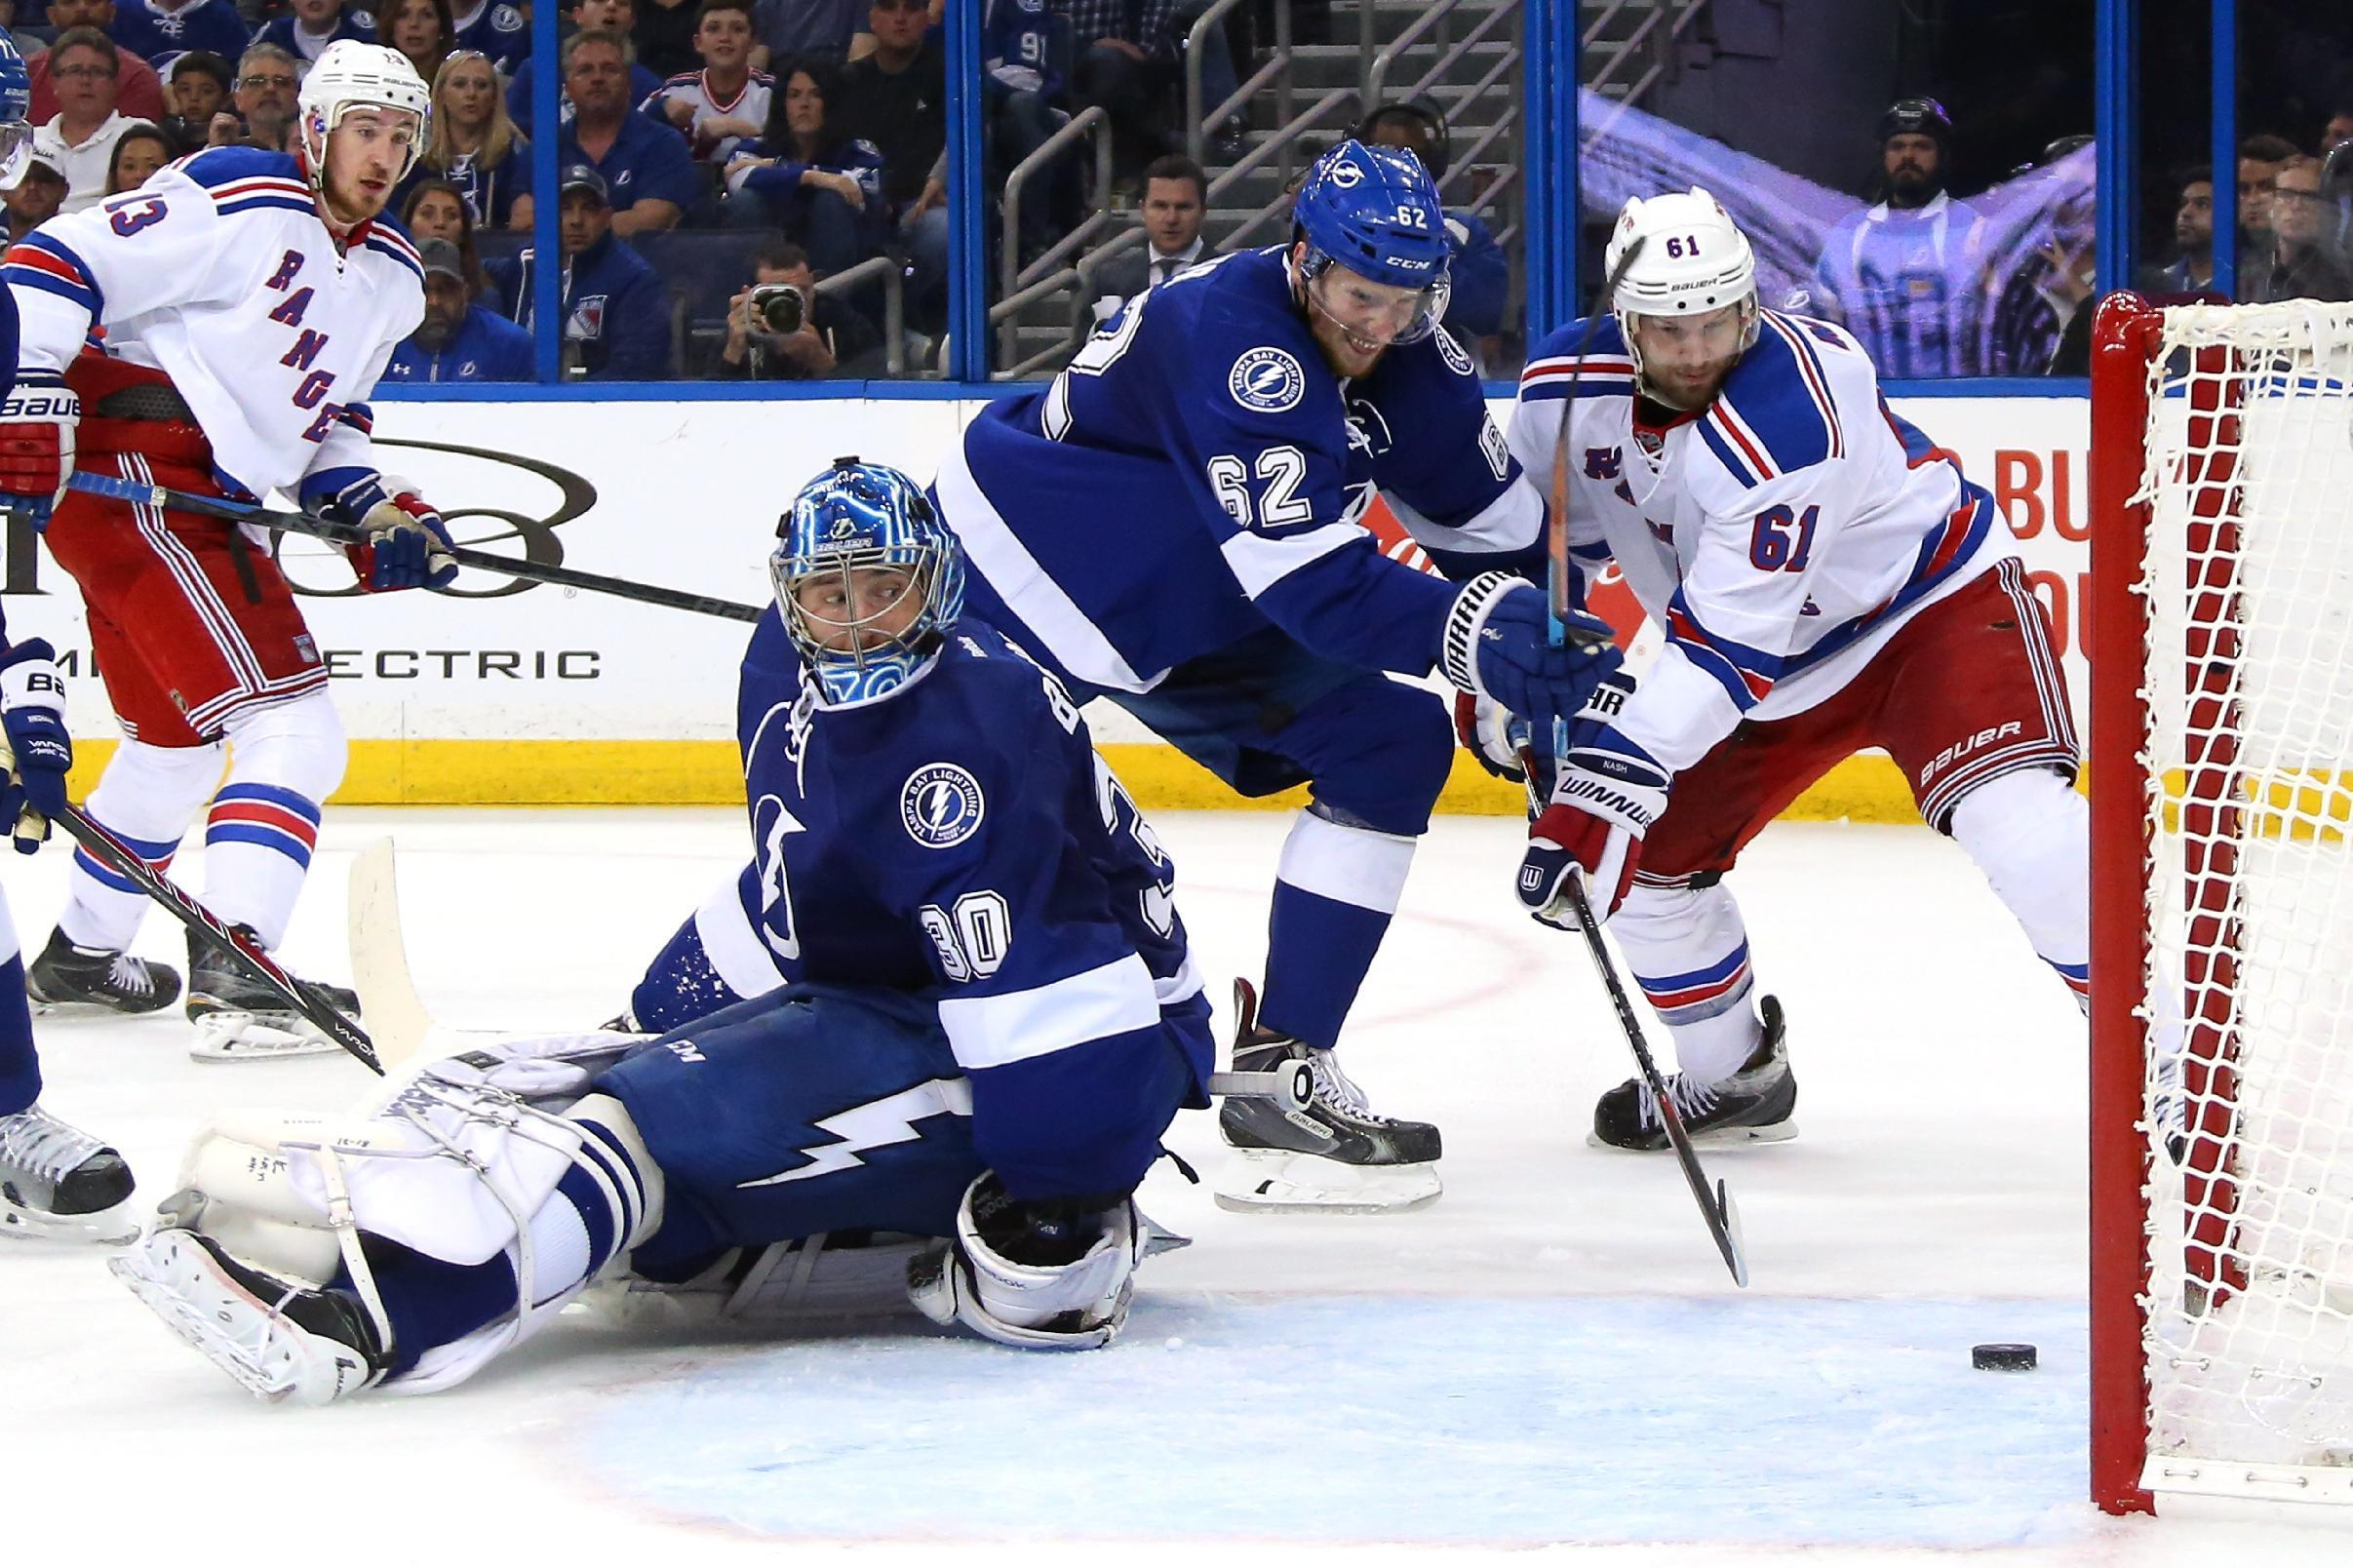 NHL - Rangers down Lightning to level series